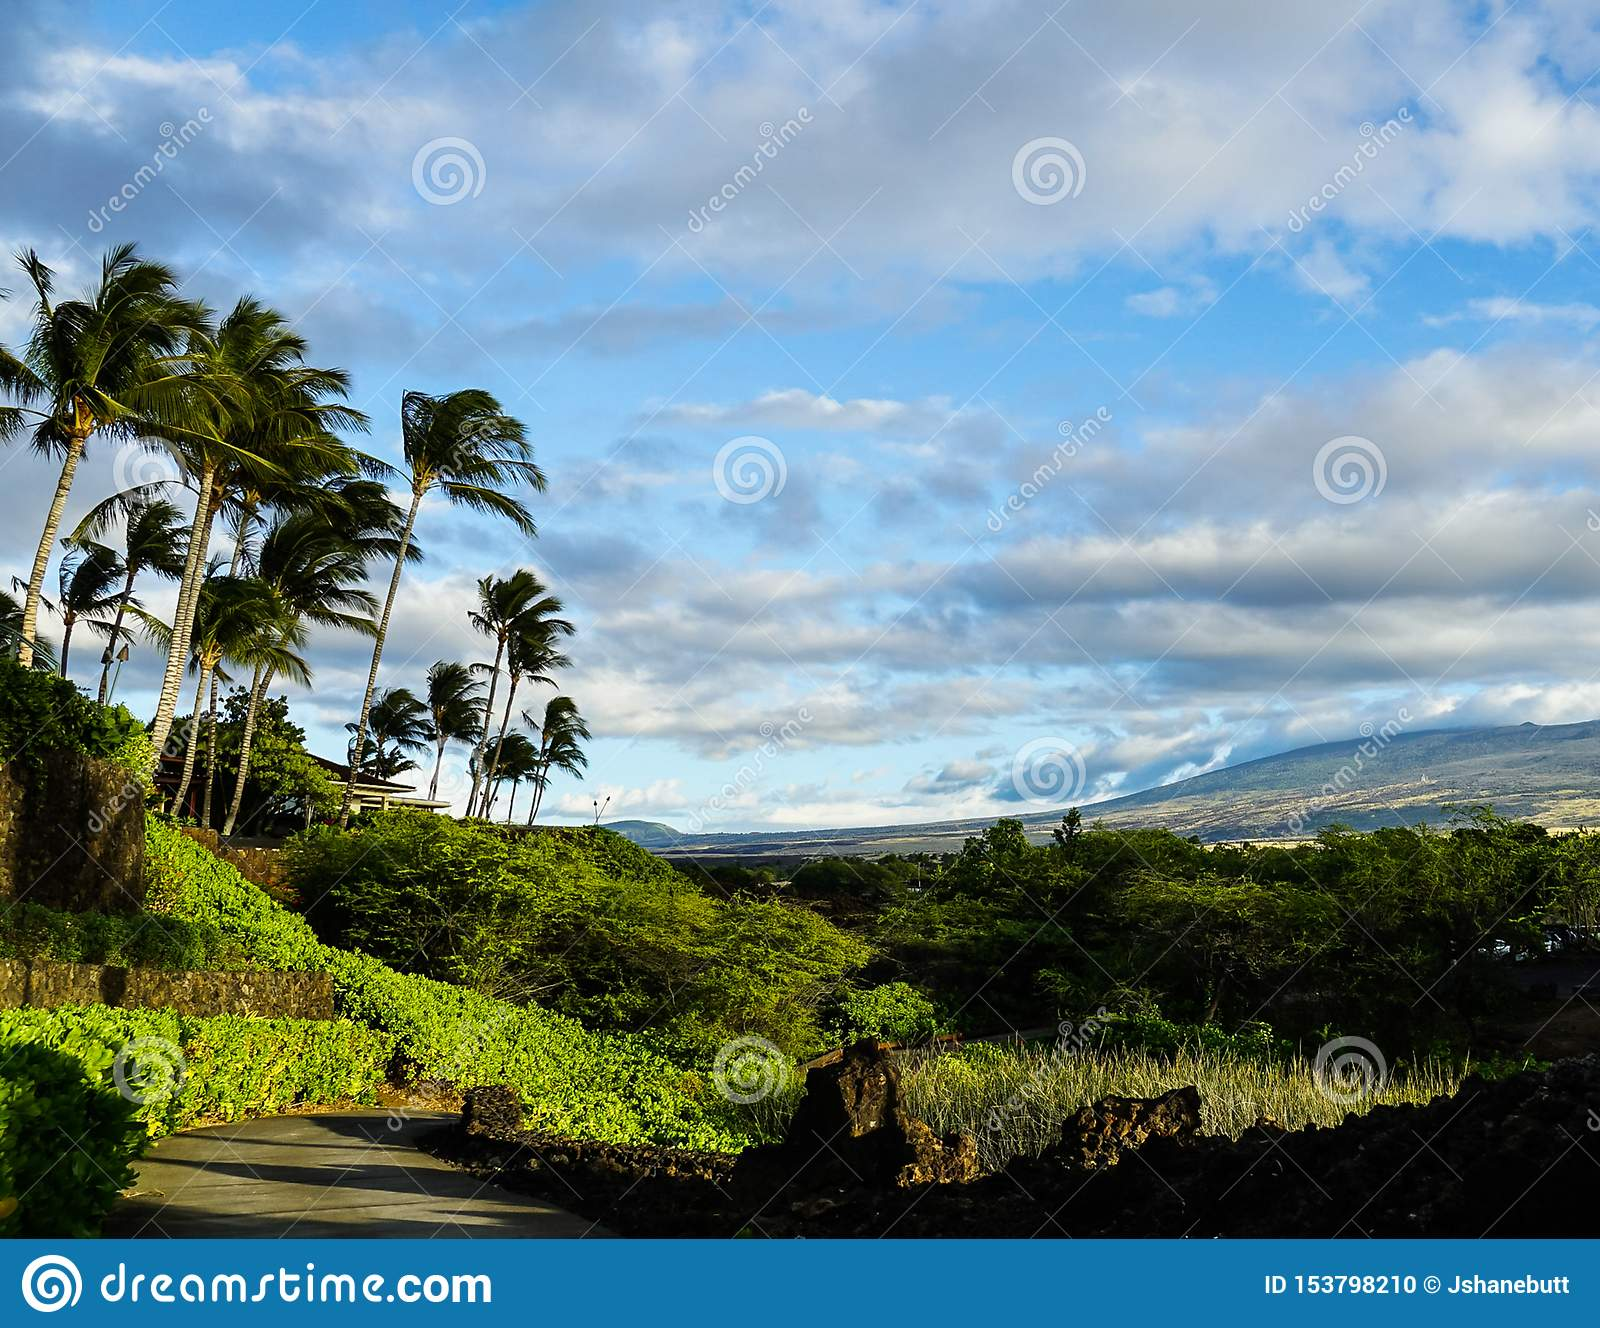 Hiking path with palm trees